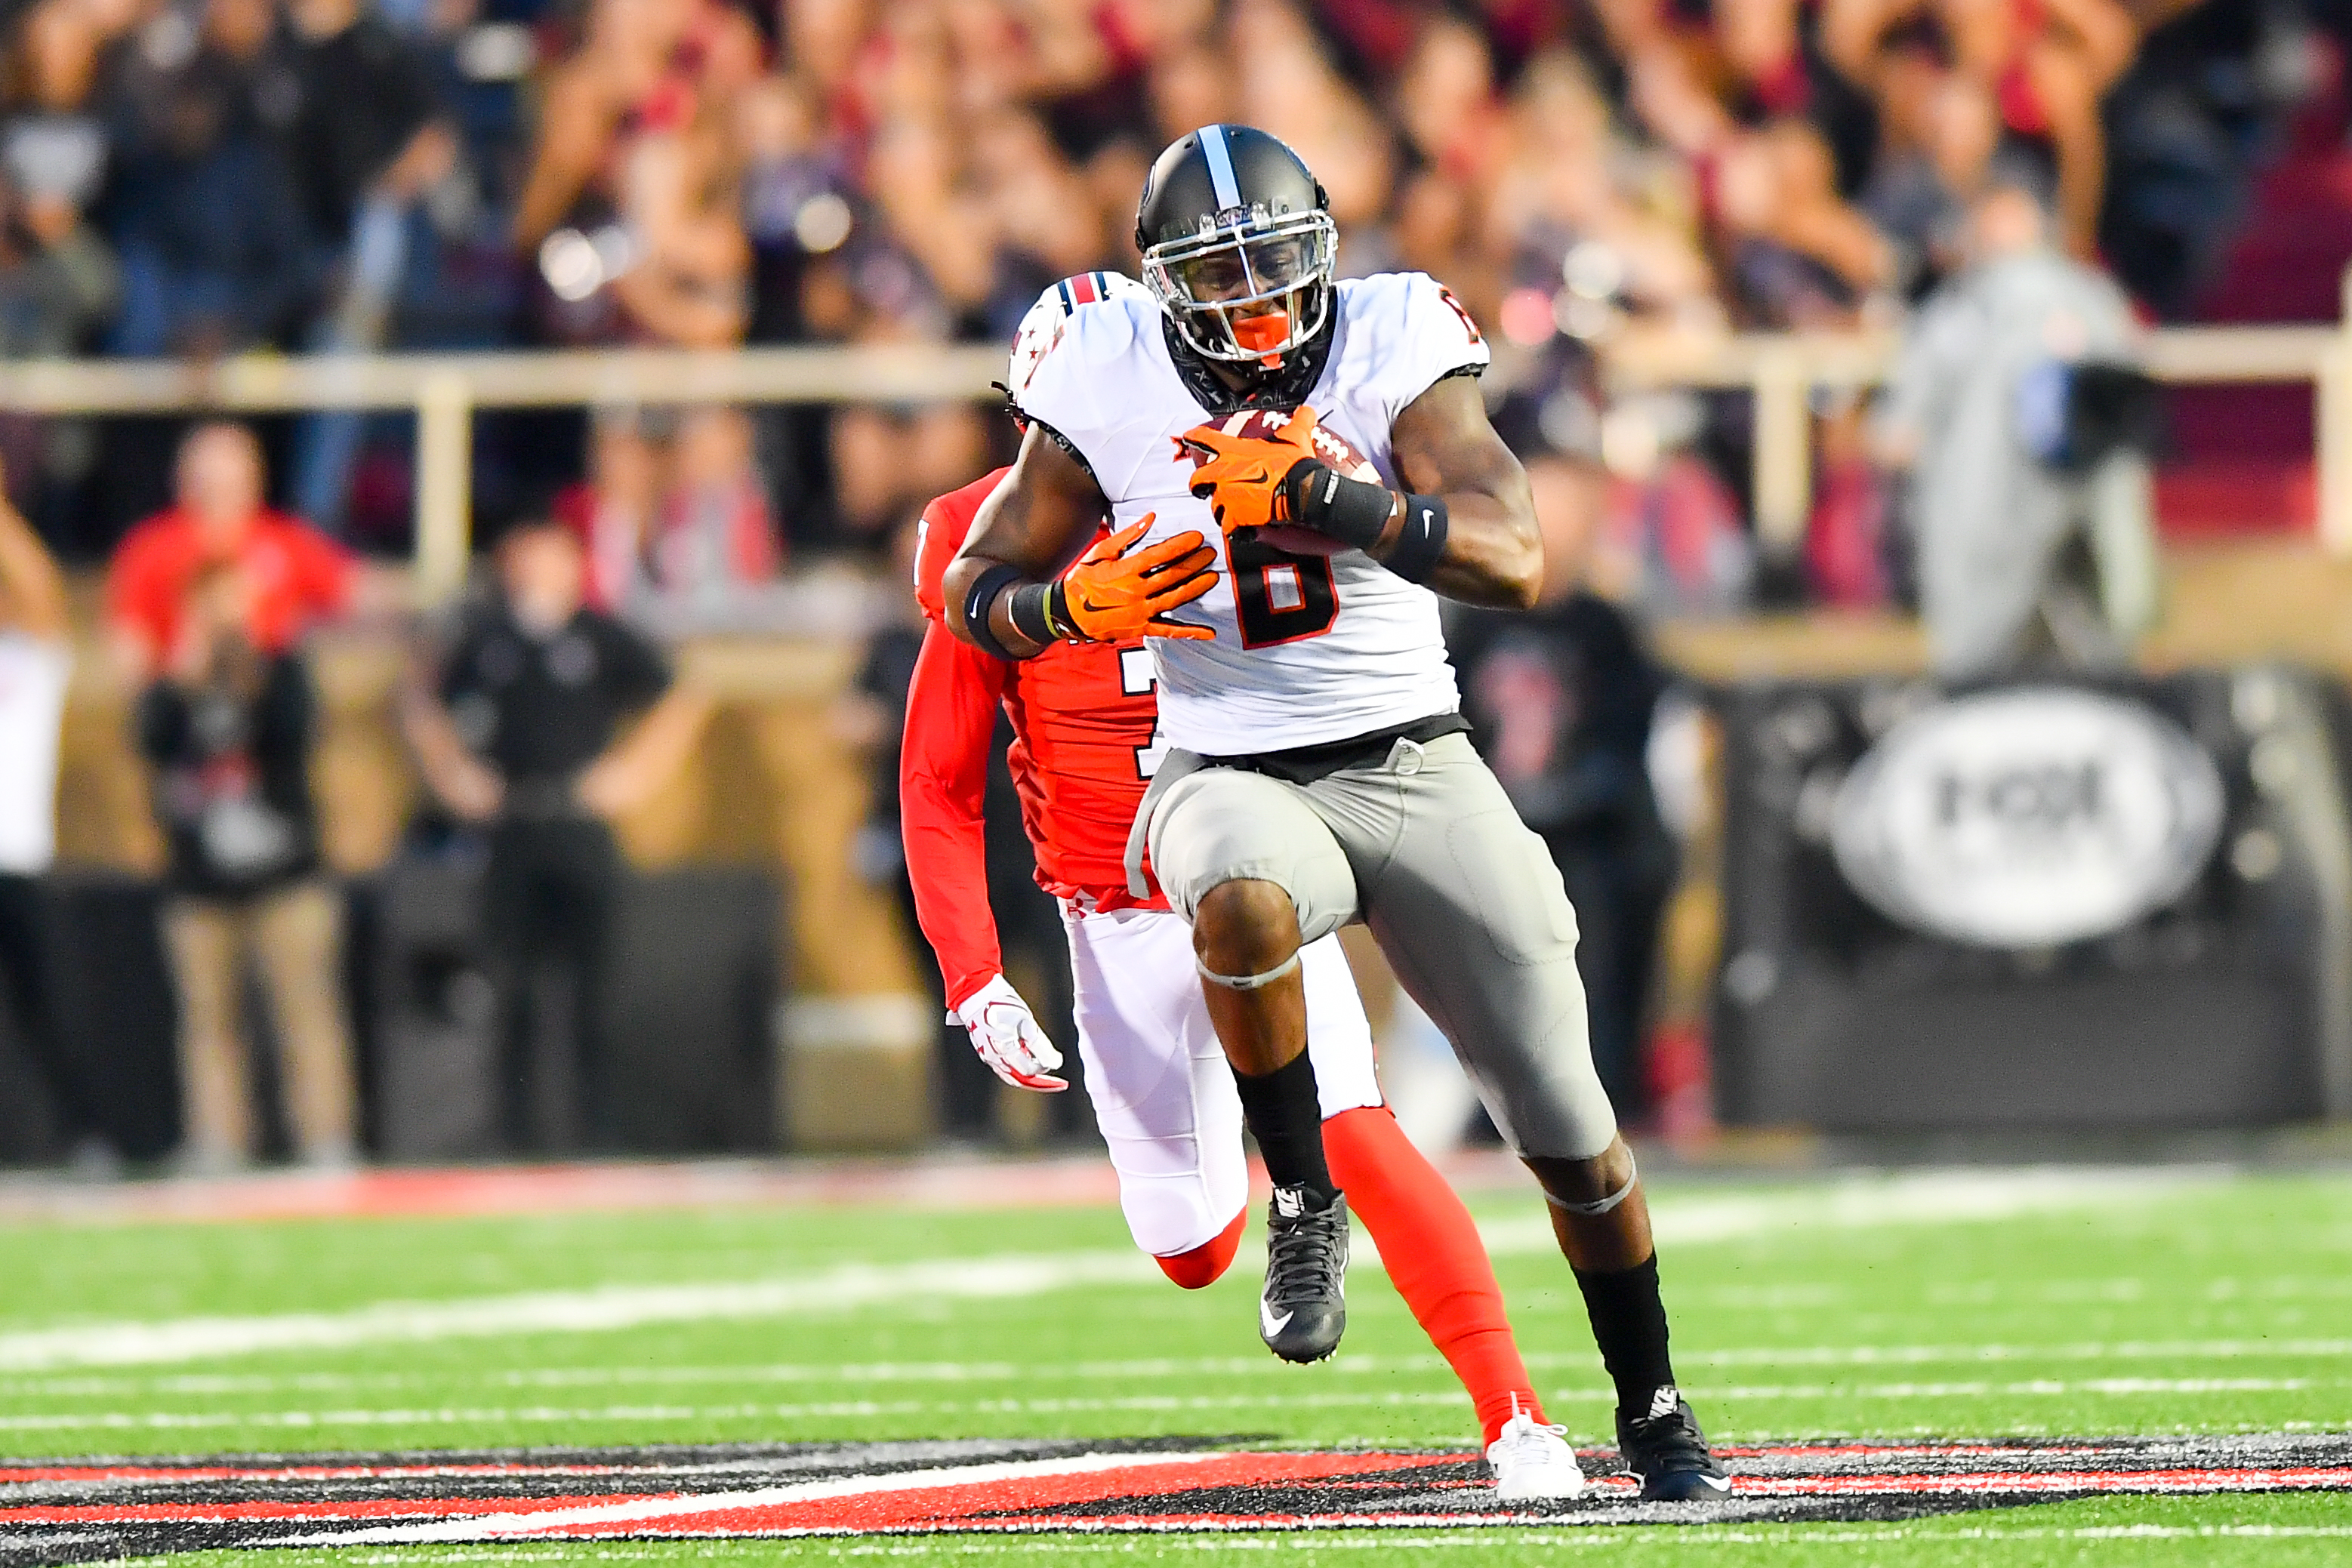 Former Oklahoma State Cowboys WR Keenen Brown breaks away from Texas Tech Red Raiders S Jah'Shawn Johnson, Sep. 30, 2017.